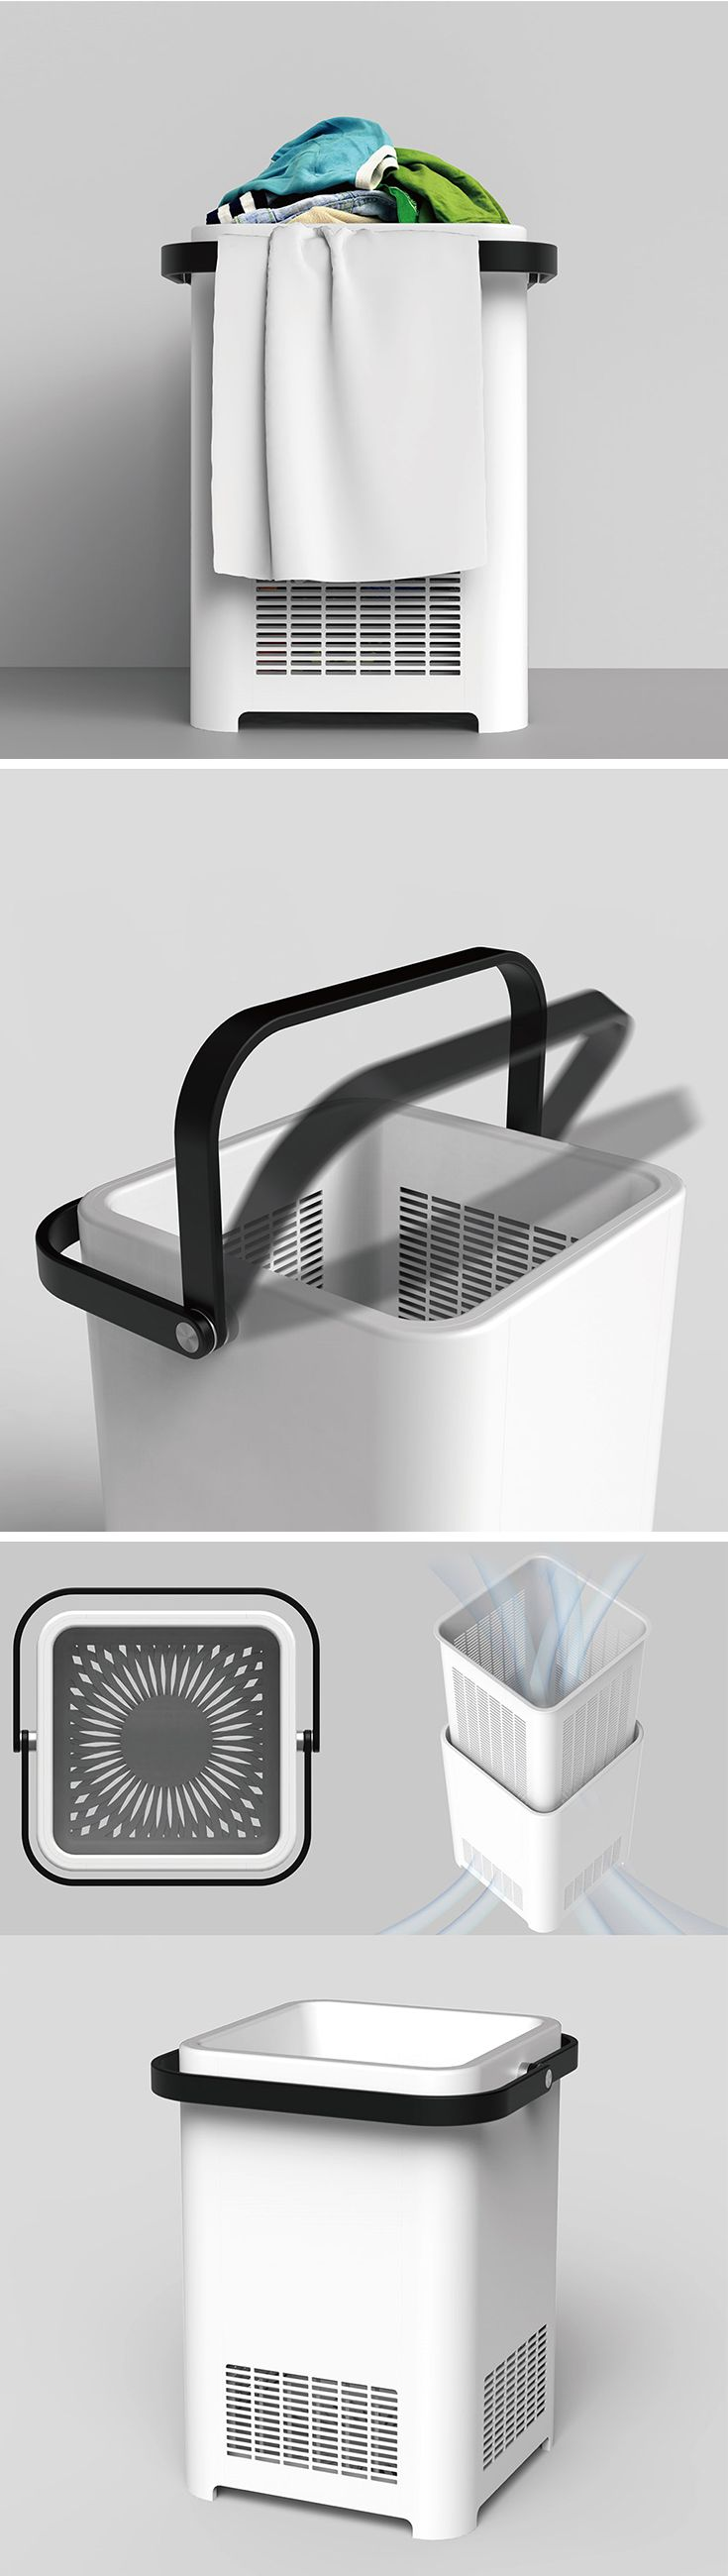 Throwing your wet bath towels into the laundry will only end up making your hamper and clothes reek of mildew. It's a good idea to leave your towels hanging out to dry before adding them to the pile. Designed with this in mind, the aptly-named Towel Rack Laundry Basket provides a convenient place to hang your wet towels. Simple hang them over the handles until they're dry! Then, fold up the handles to carry your laundry to the washer.